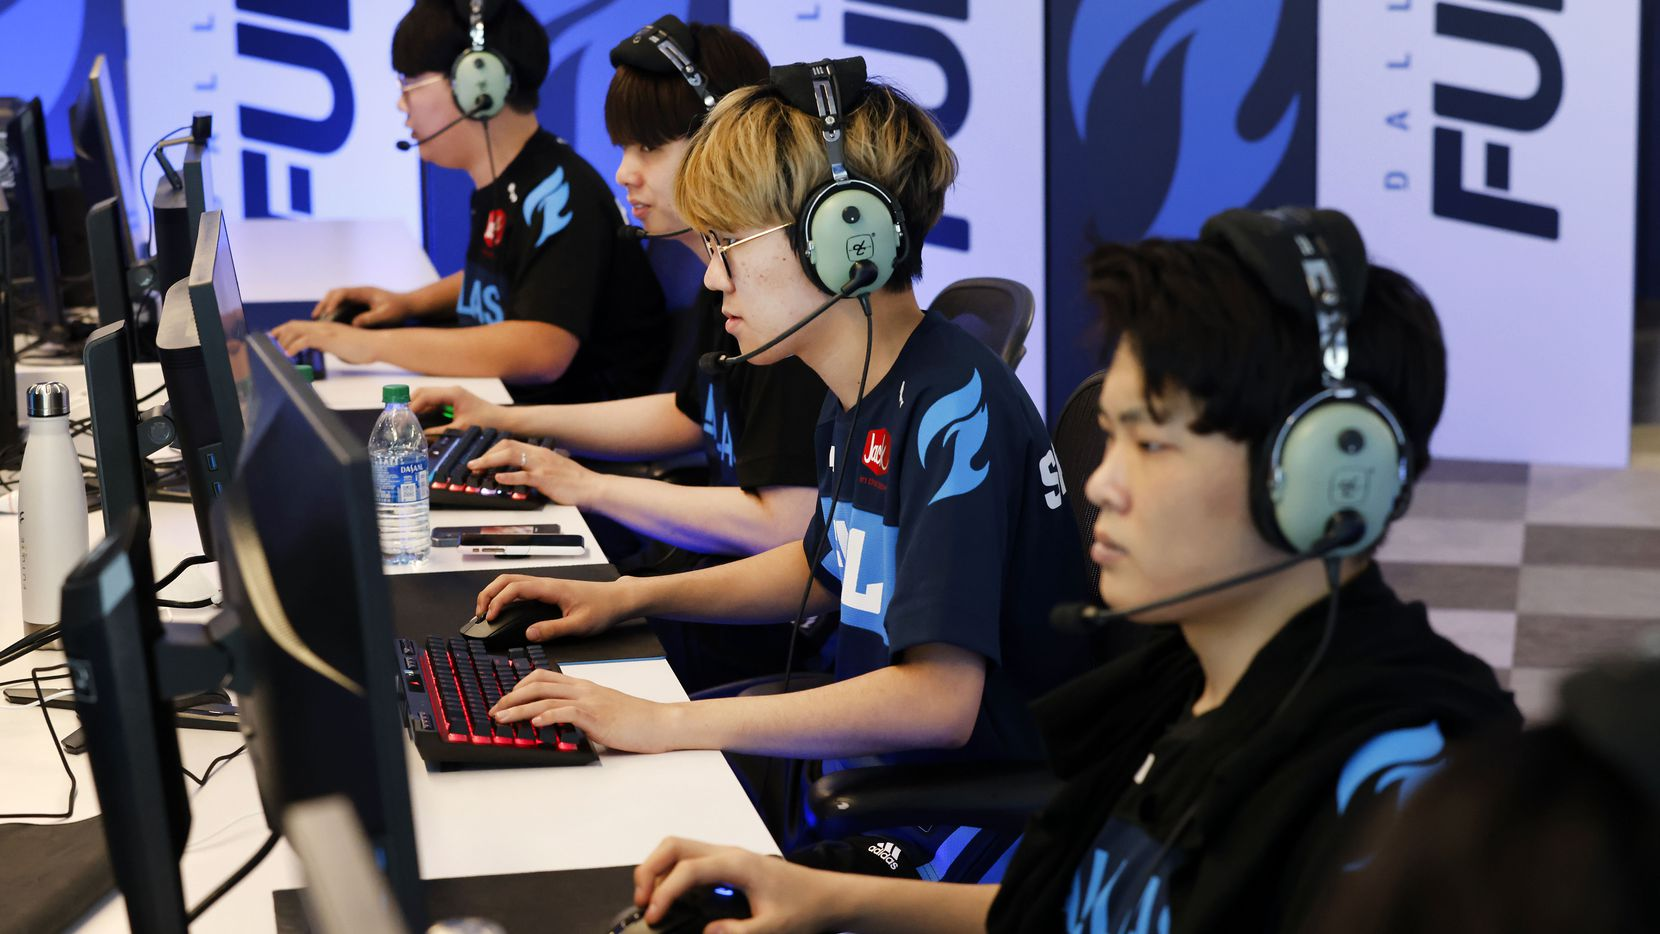 Dallas Fuel Overwatch League players (from left) Hanbeen 'Hanbin' Choi, Euiseok 'Fearless' Lee, Yeonghan 'SP9RK1E' Kim, and Gihyo 'XZI' Jung practice ahead of their season opener against Houston at Envy Gaming Headquarters in Dallas, Monday, March 29, 2021. (Tom Fox/The Dallas Morning News)